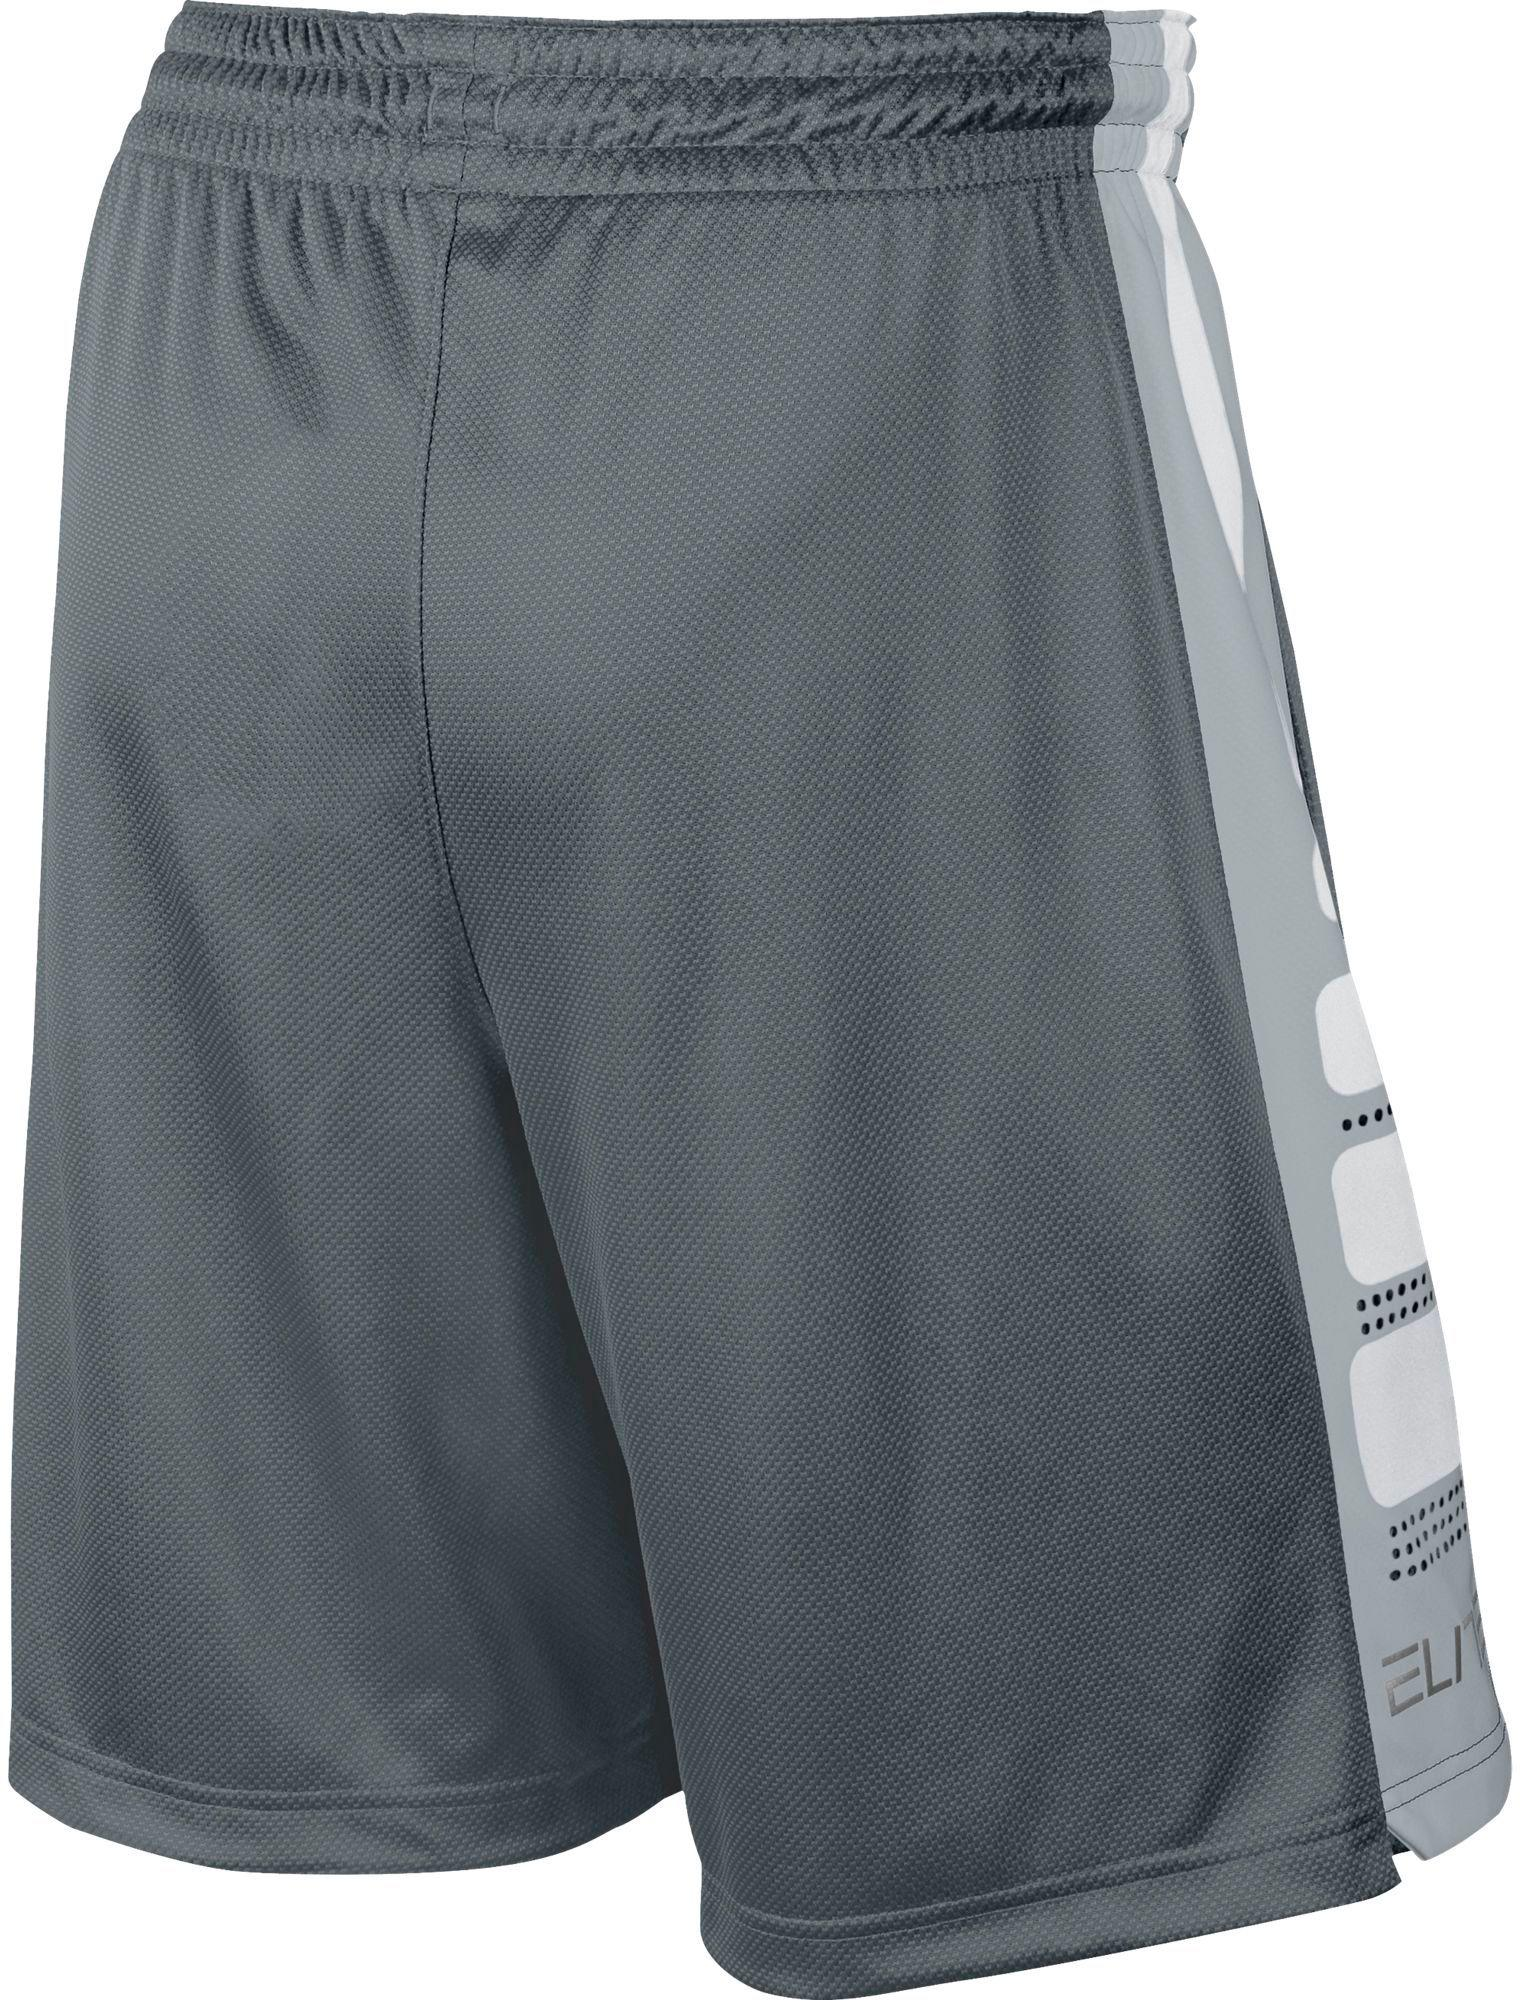 timeless design 5eb4f 73dd8 Nike - Gray Elite Dri-fit Basketball Shorts for Men - Lyst